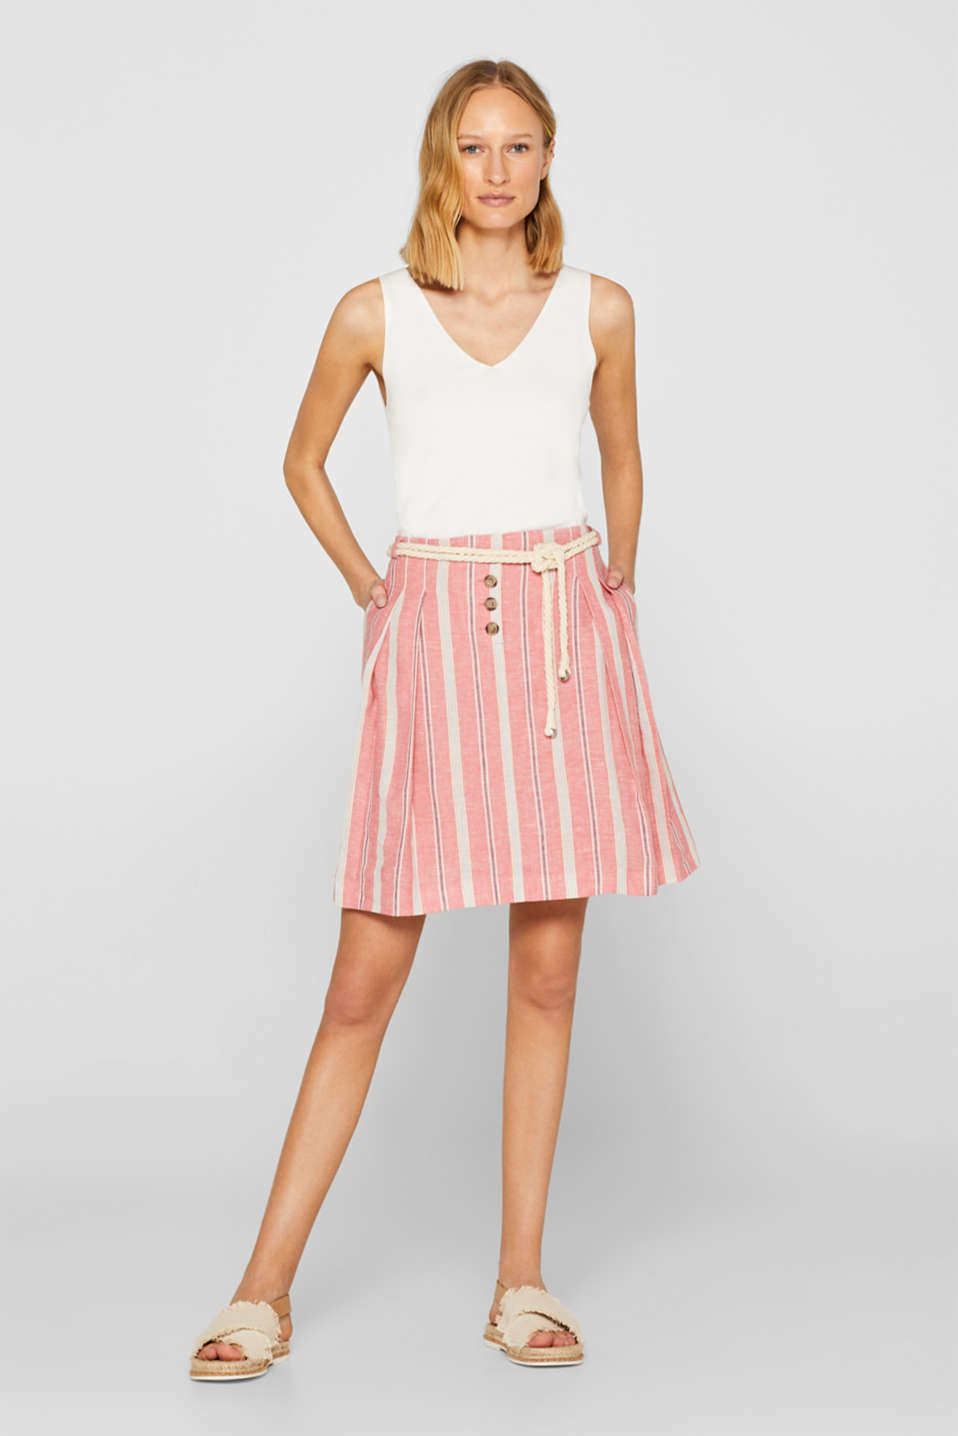 Esprit - Made of blended linen: skirt with waist pleats and a cord belt